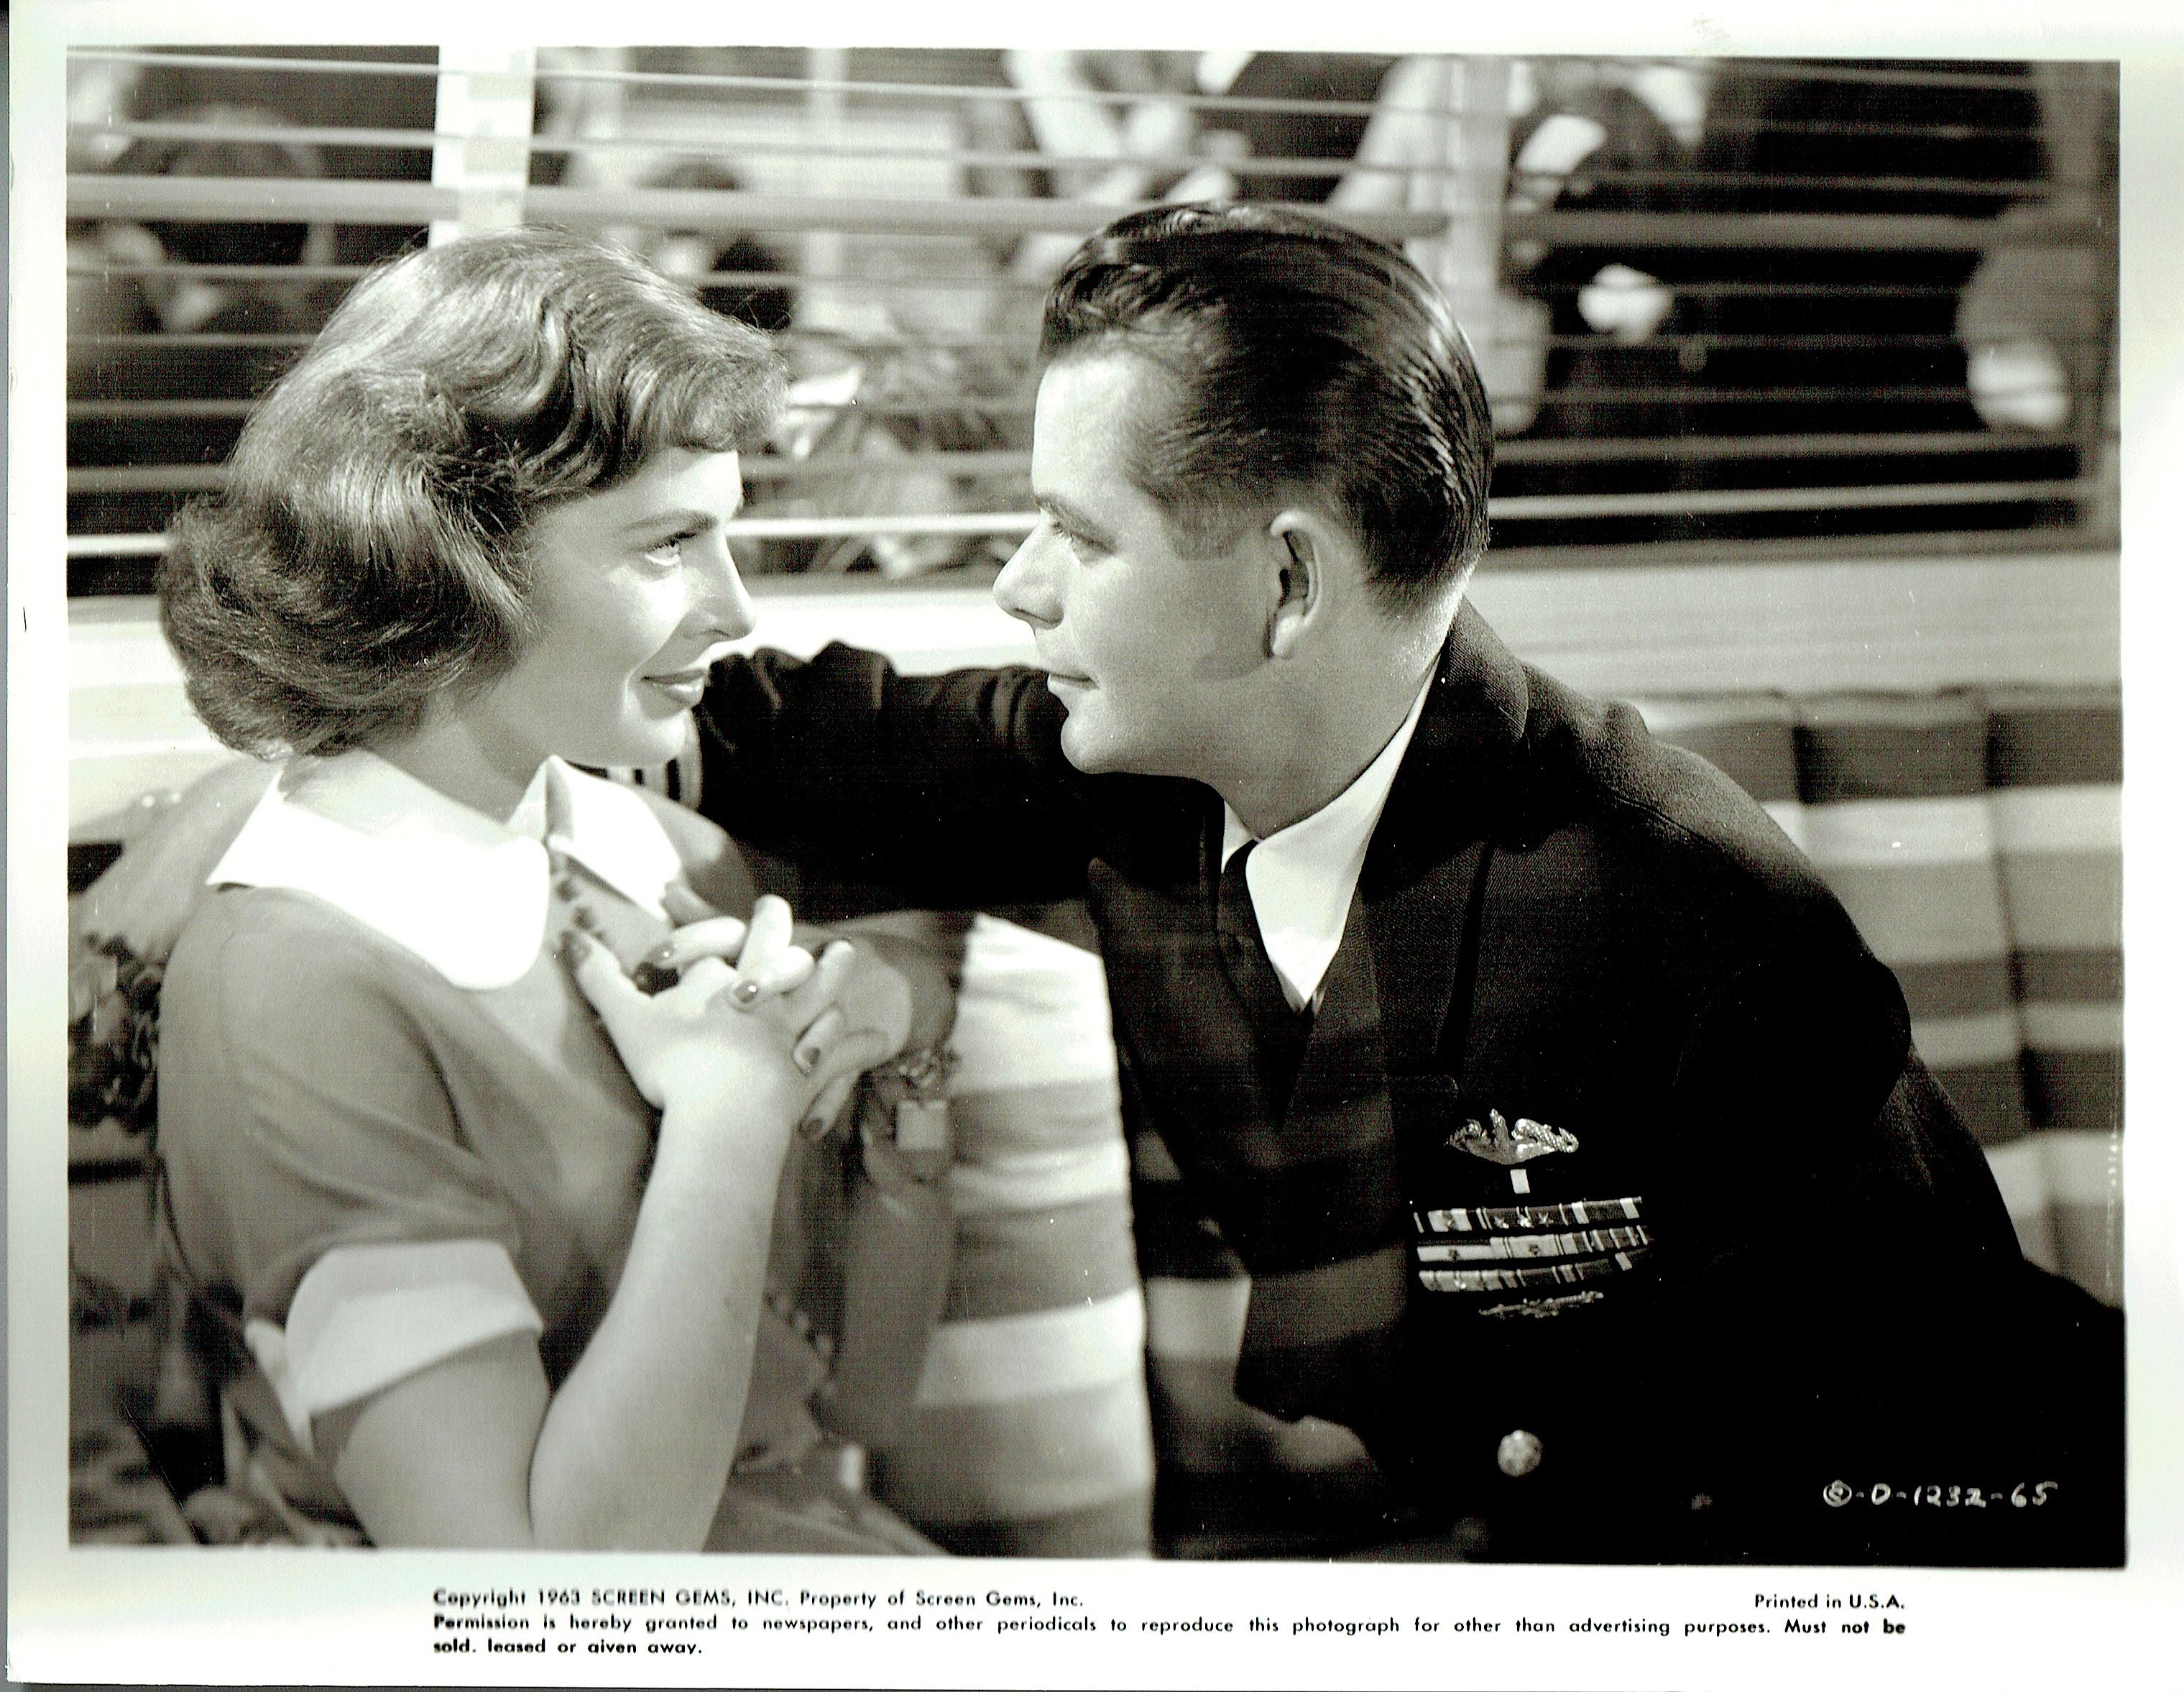 Glenn Ford and Viveca Lindfors in The Flying Missile (1950)